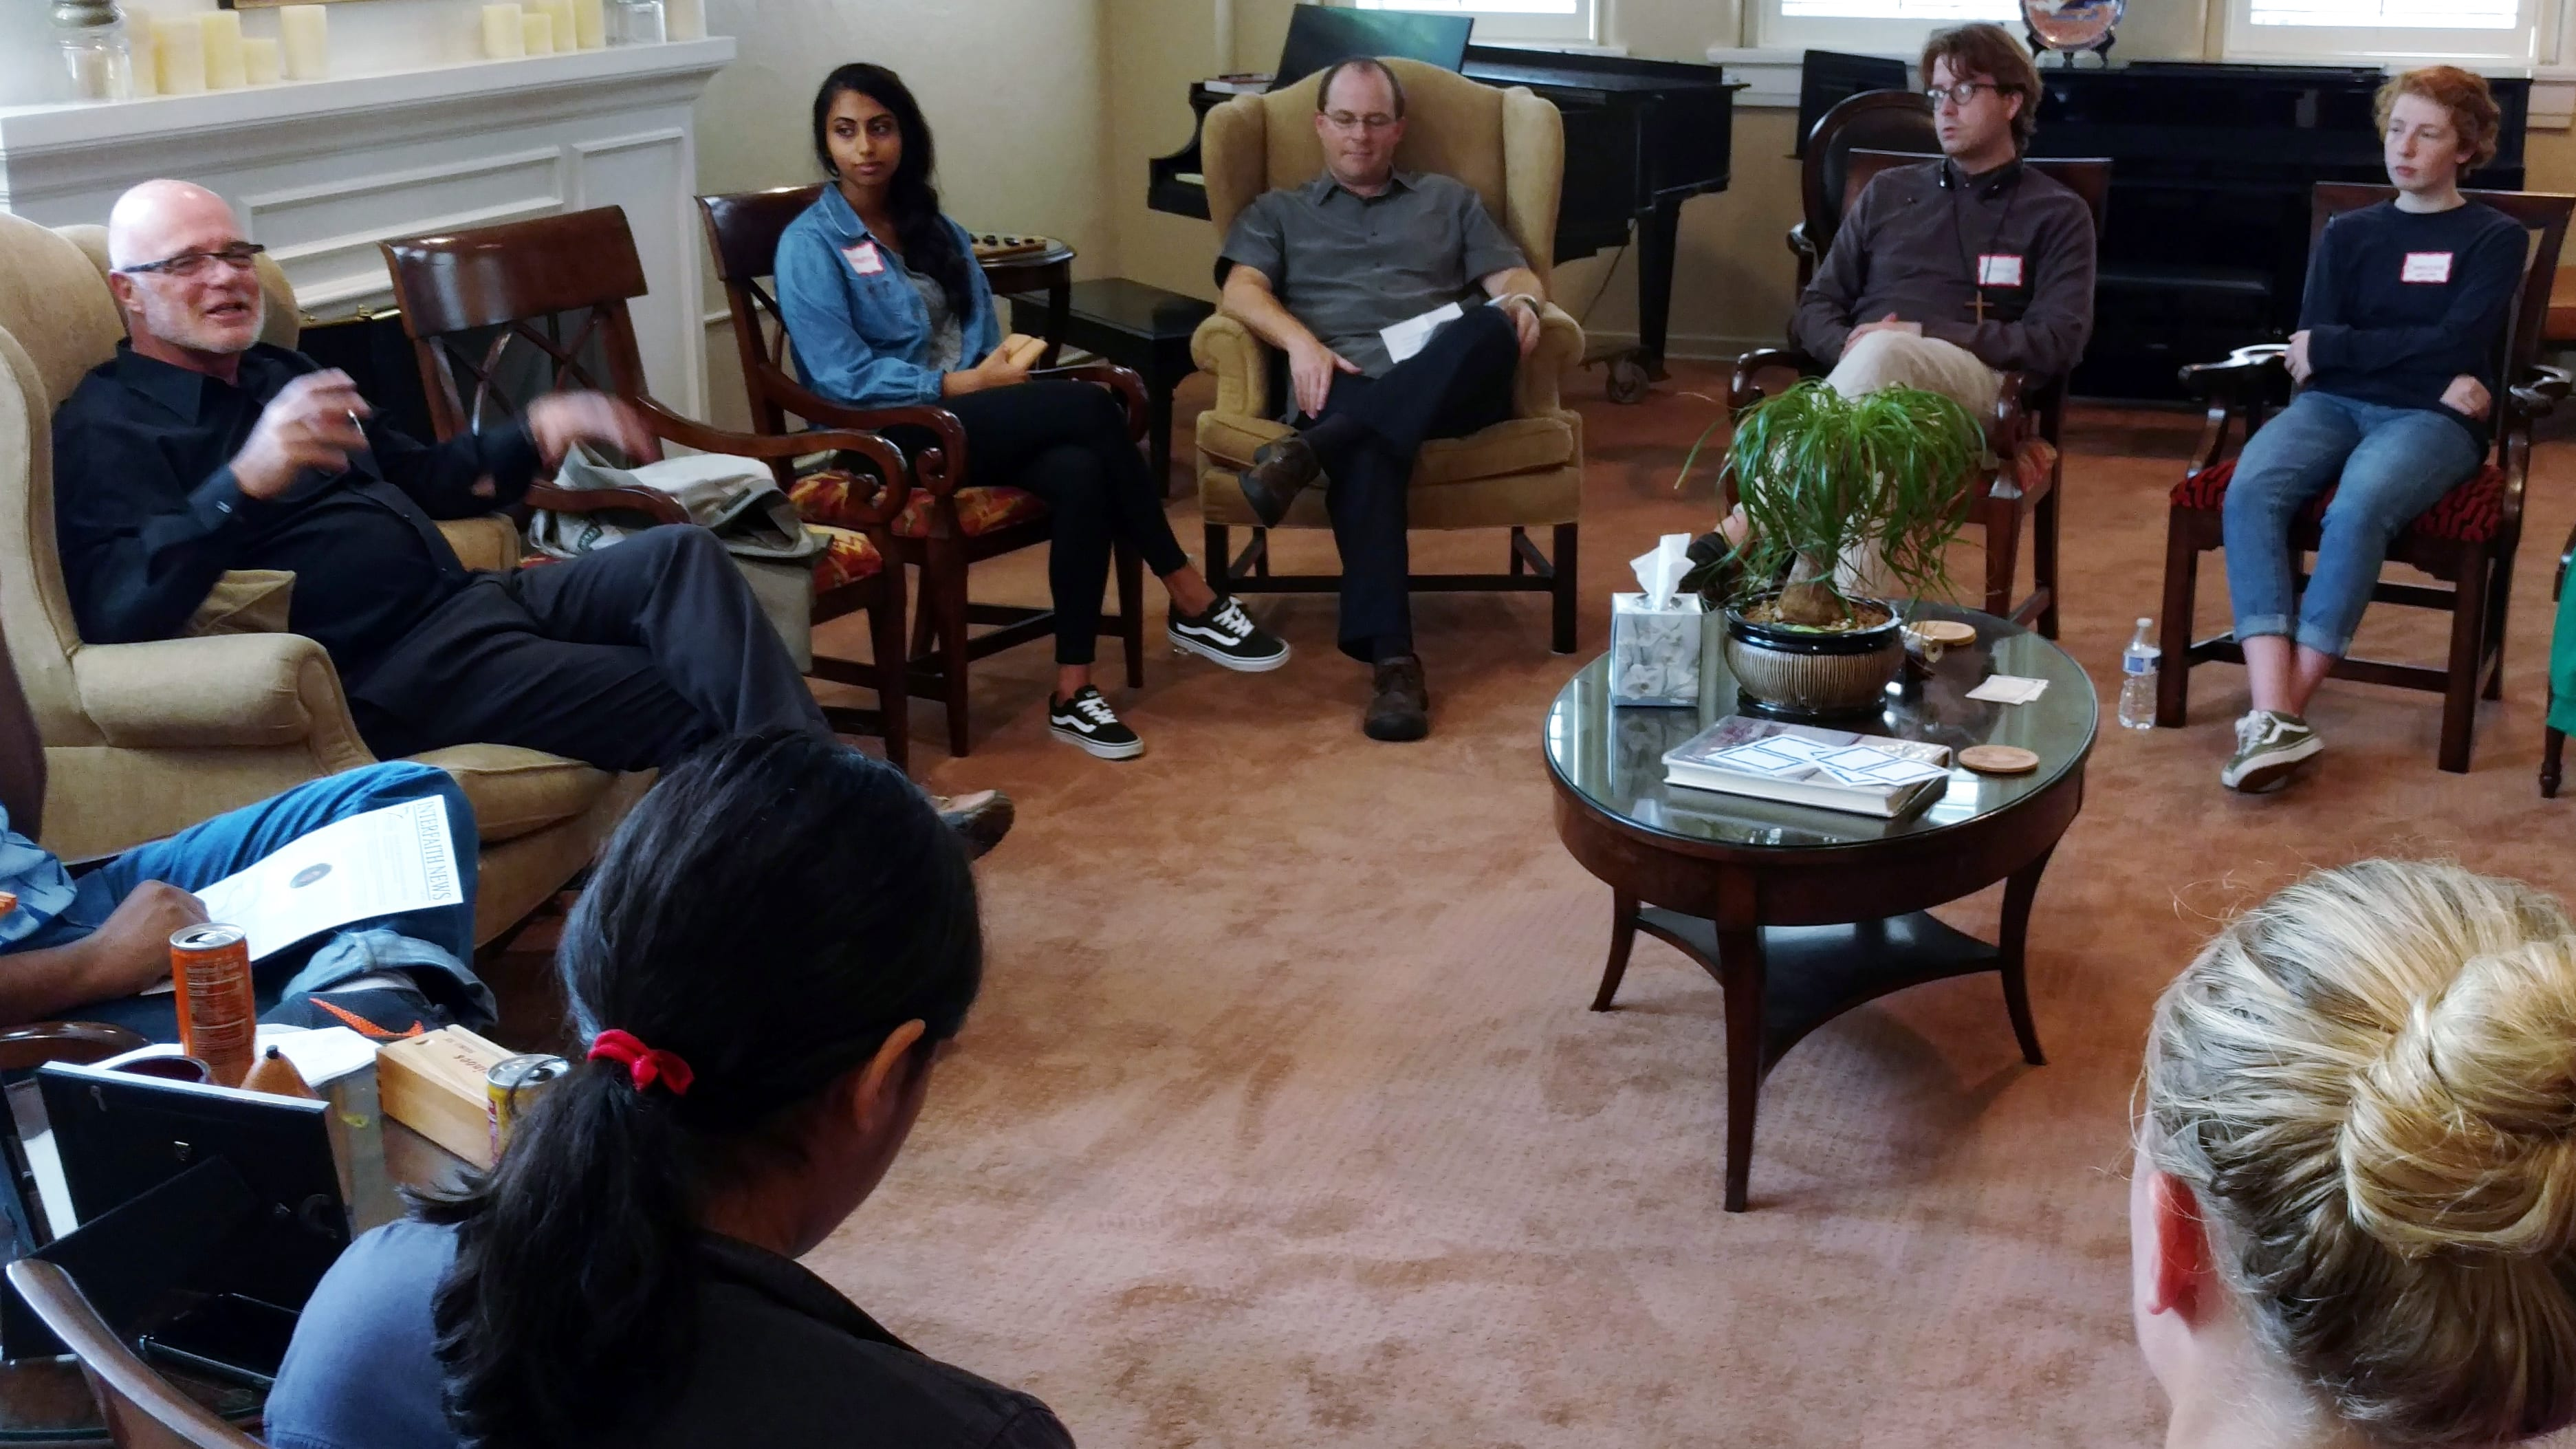 Brian McLaren meets with members and leaders of the Kansas City Interfaith Youth Alliance